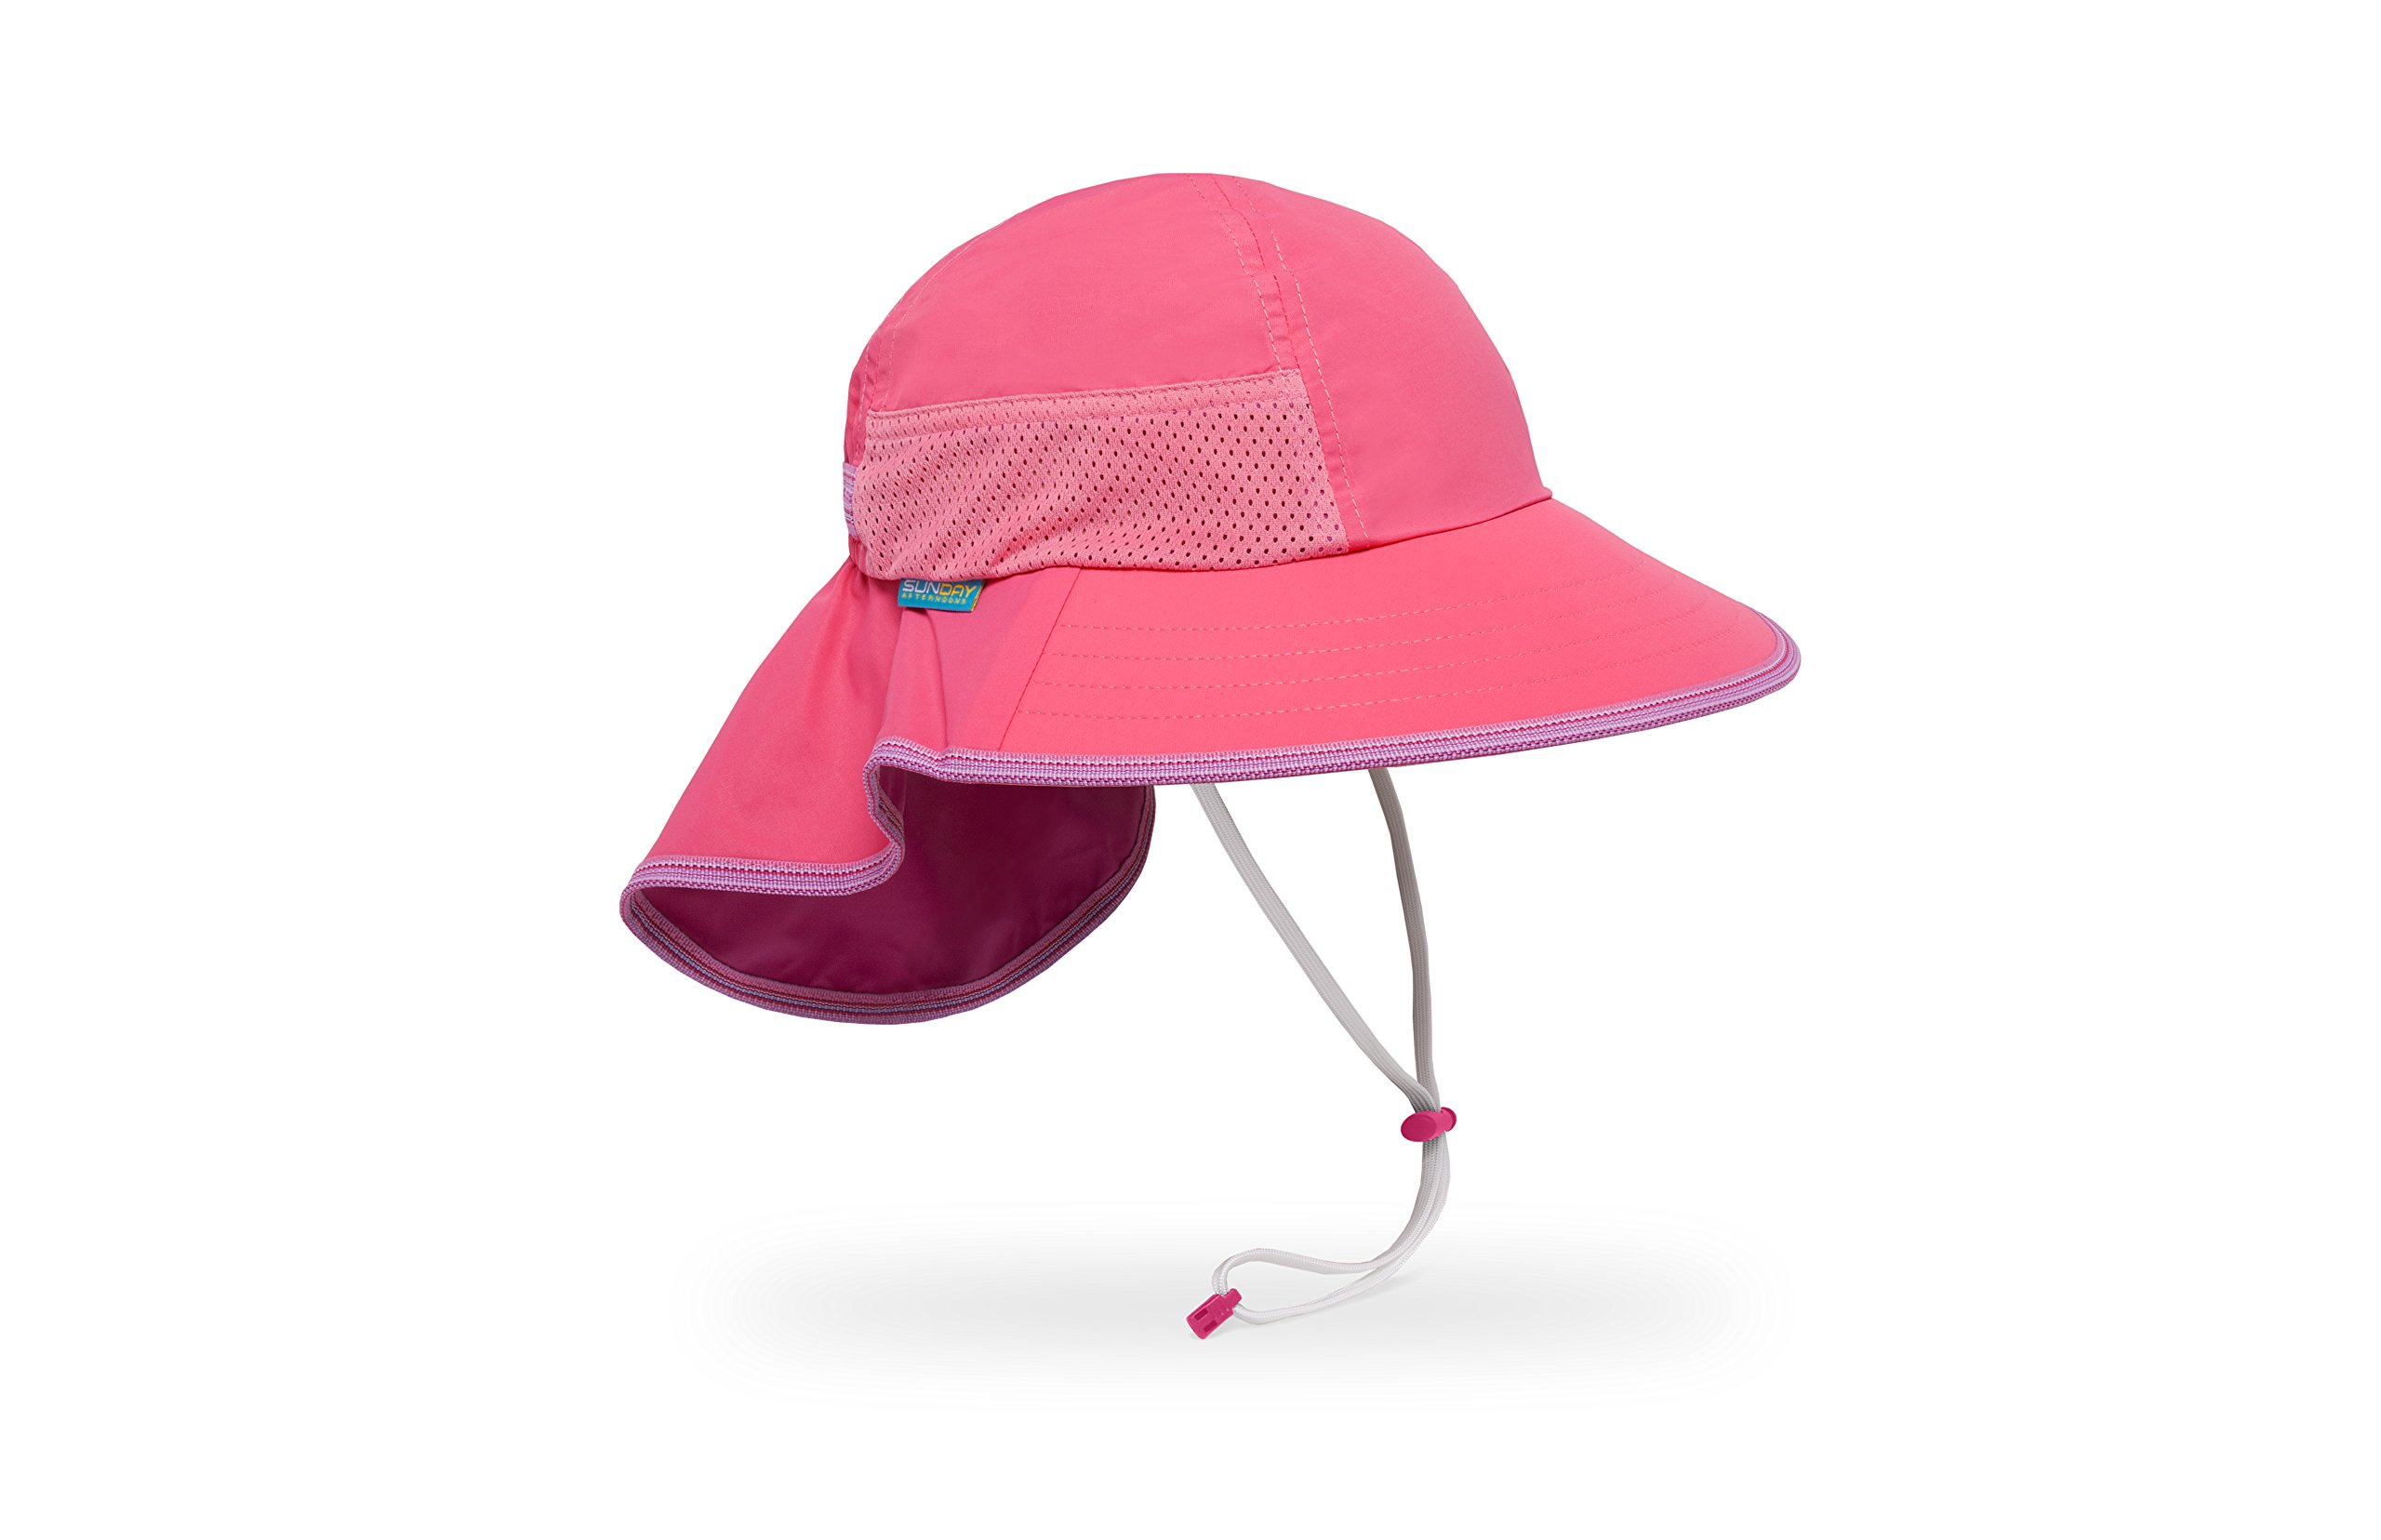 Sunday Afternoons Kids & Baby Little Kids Play Hat, Hot Pink, Small